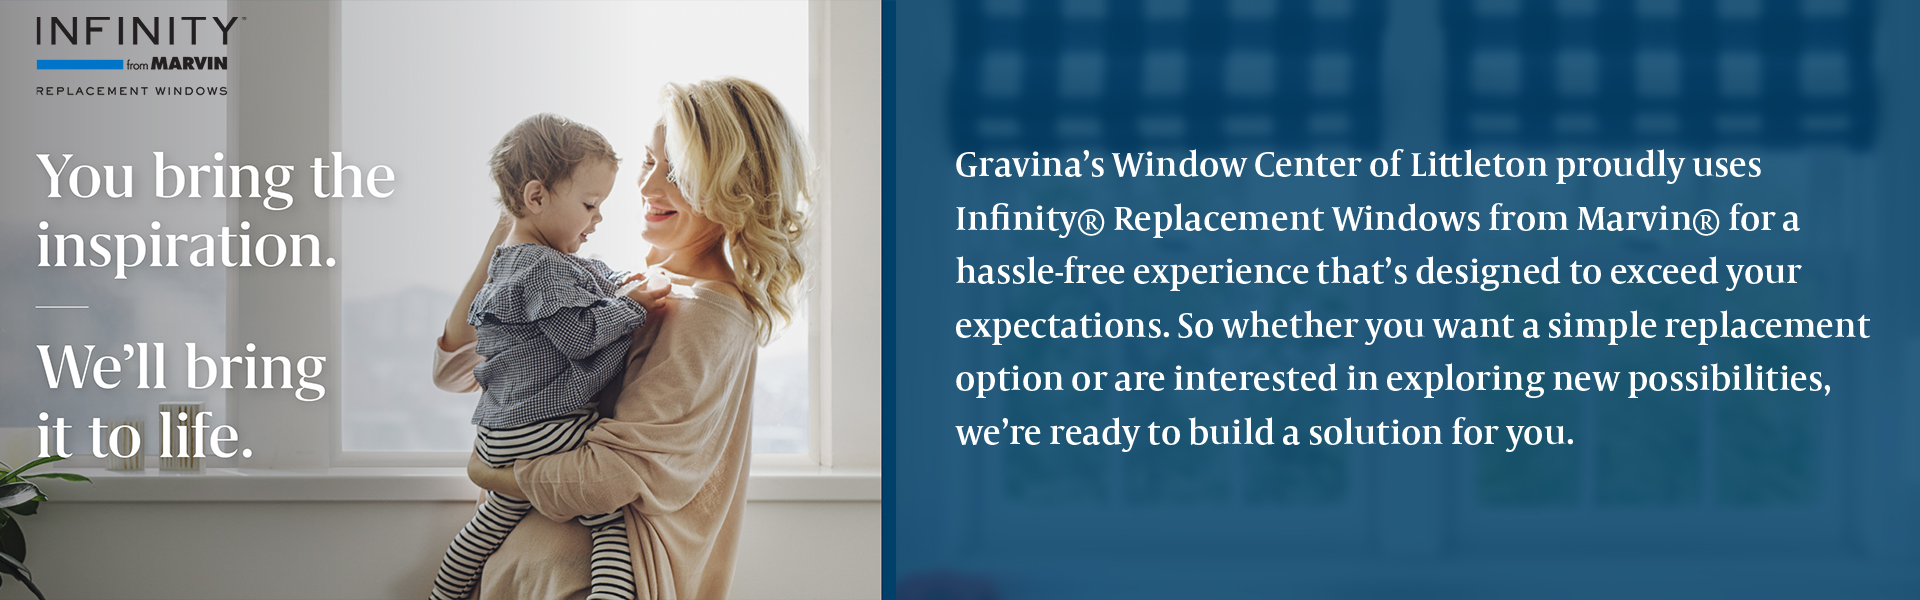 Replacement Windows Near Me Infinity From Marvin